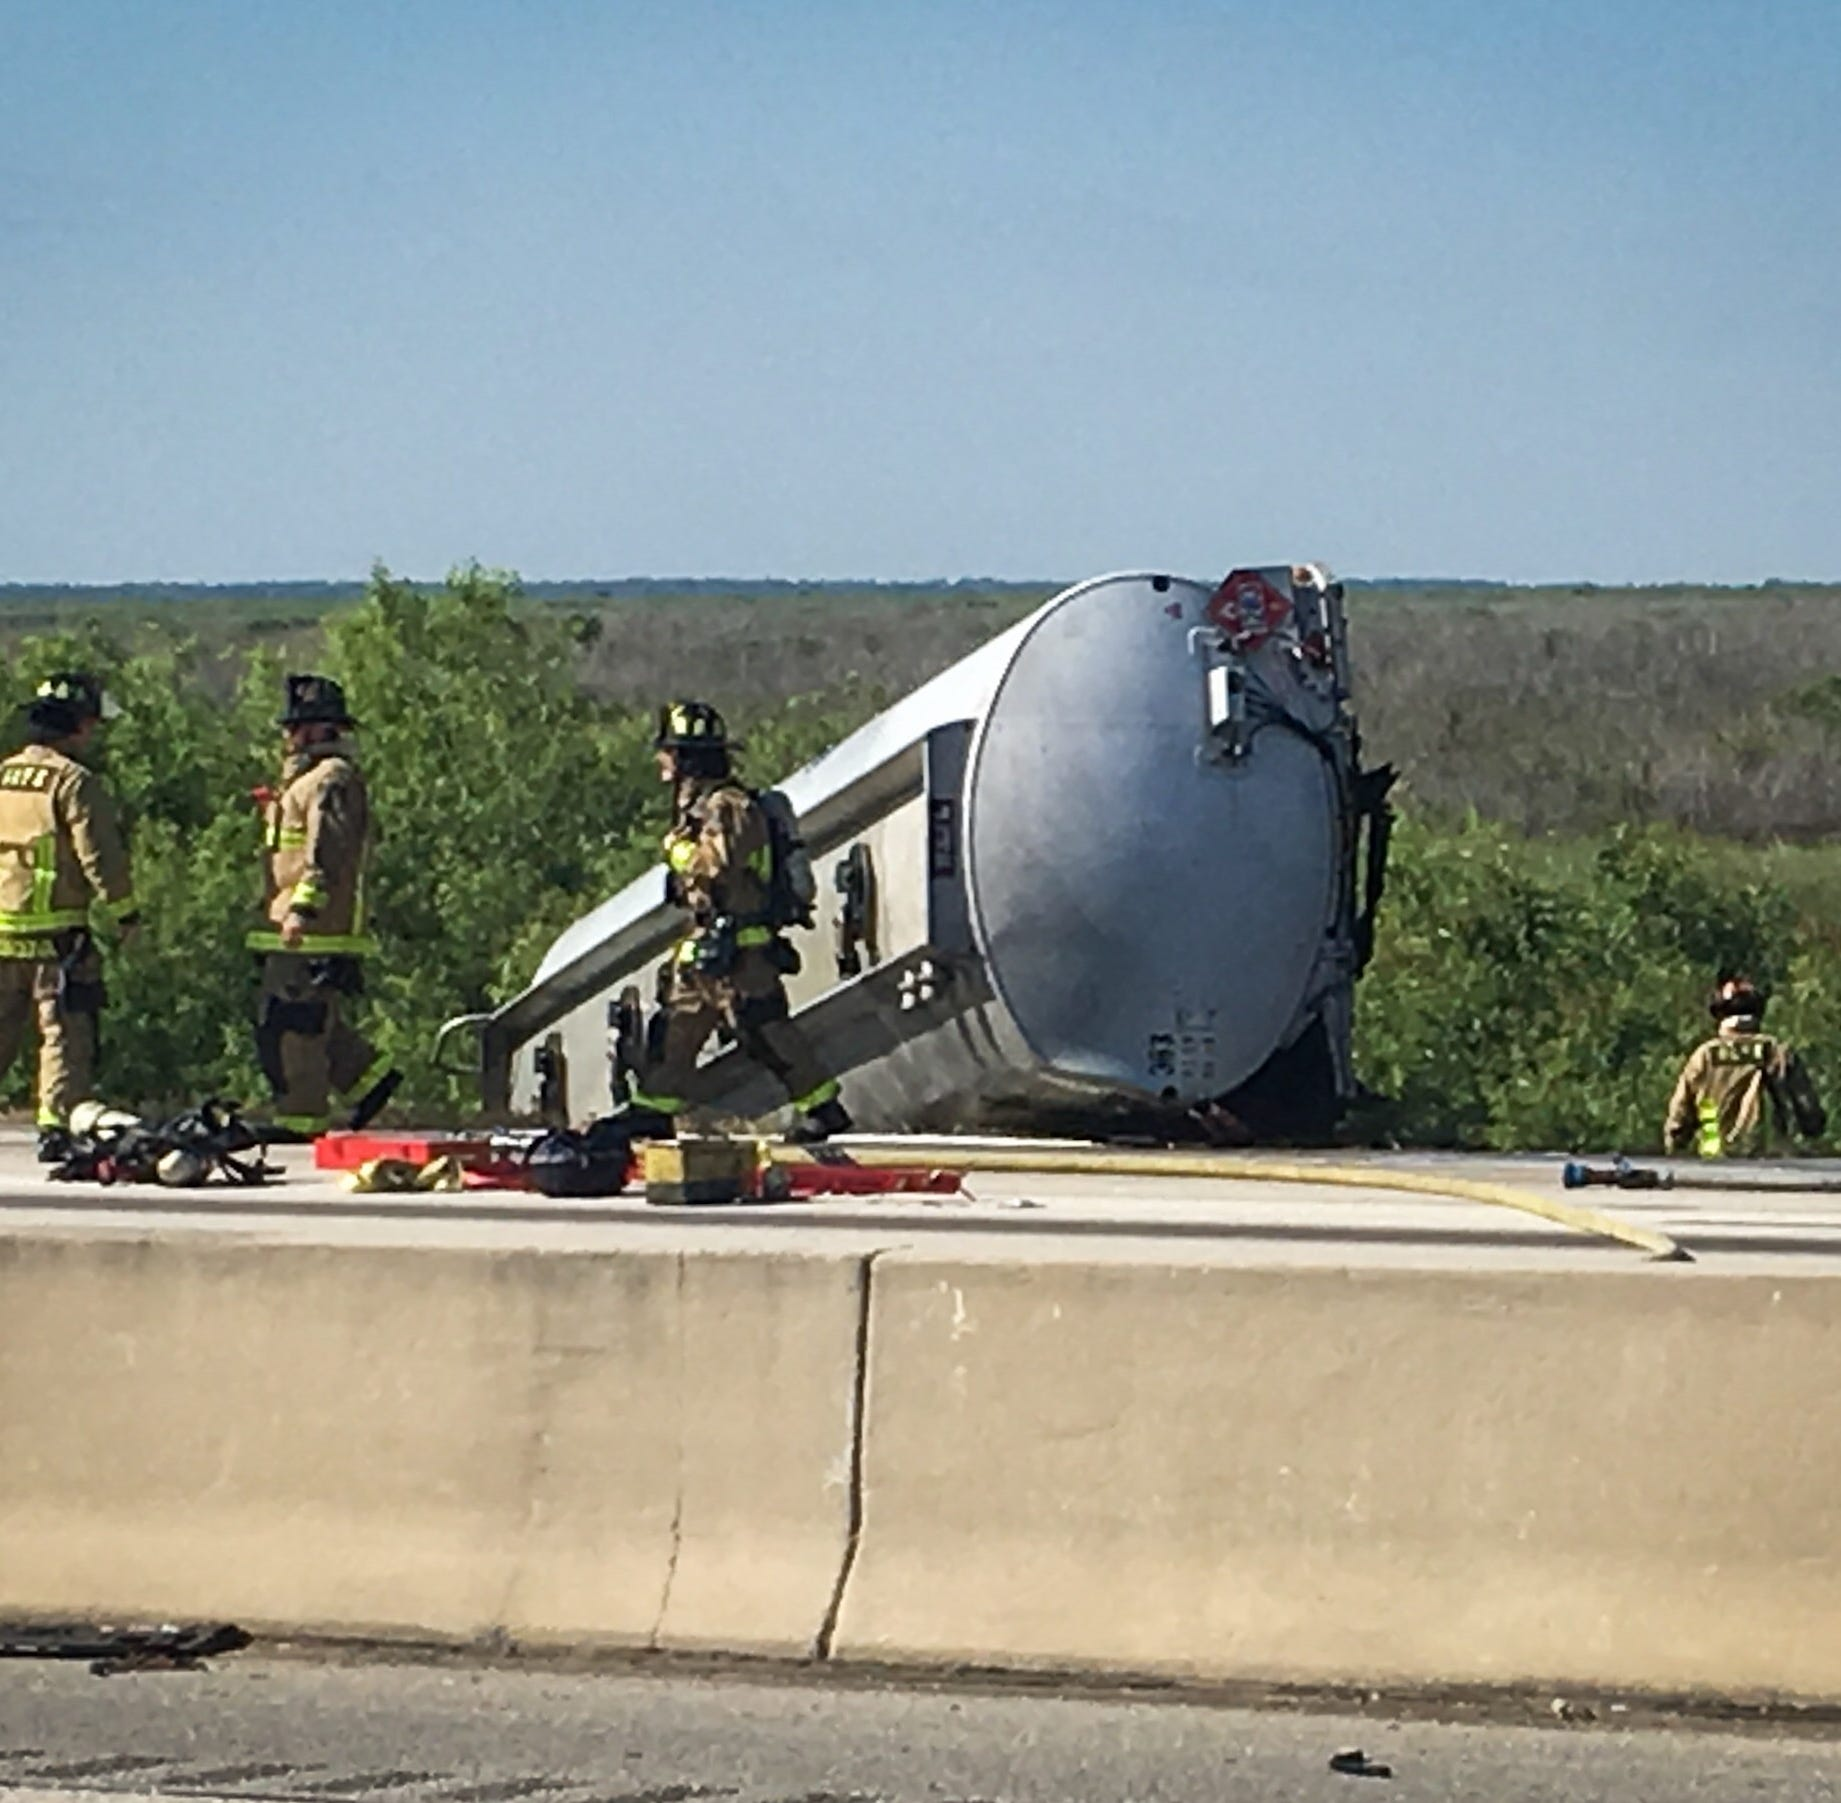 I-95 shut down after fuel tanker flips over in Rockledge